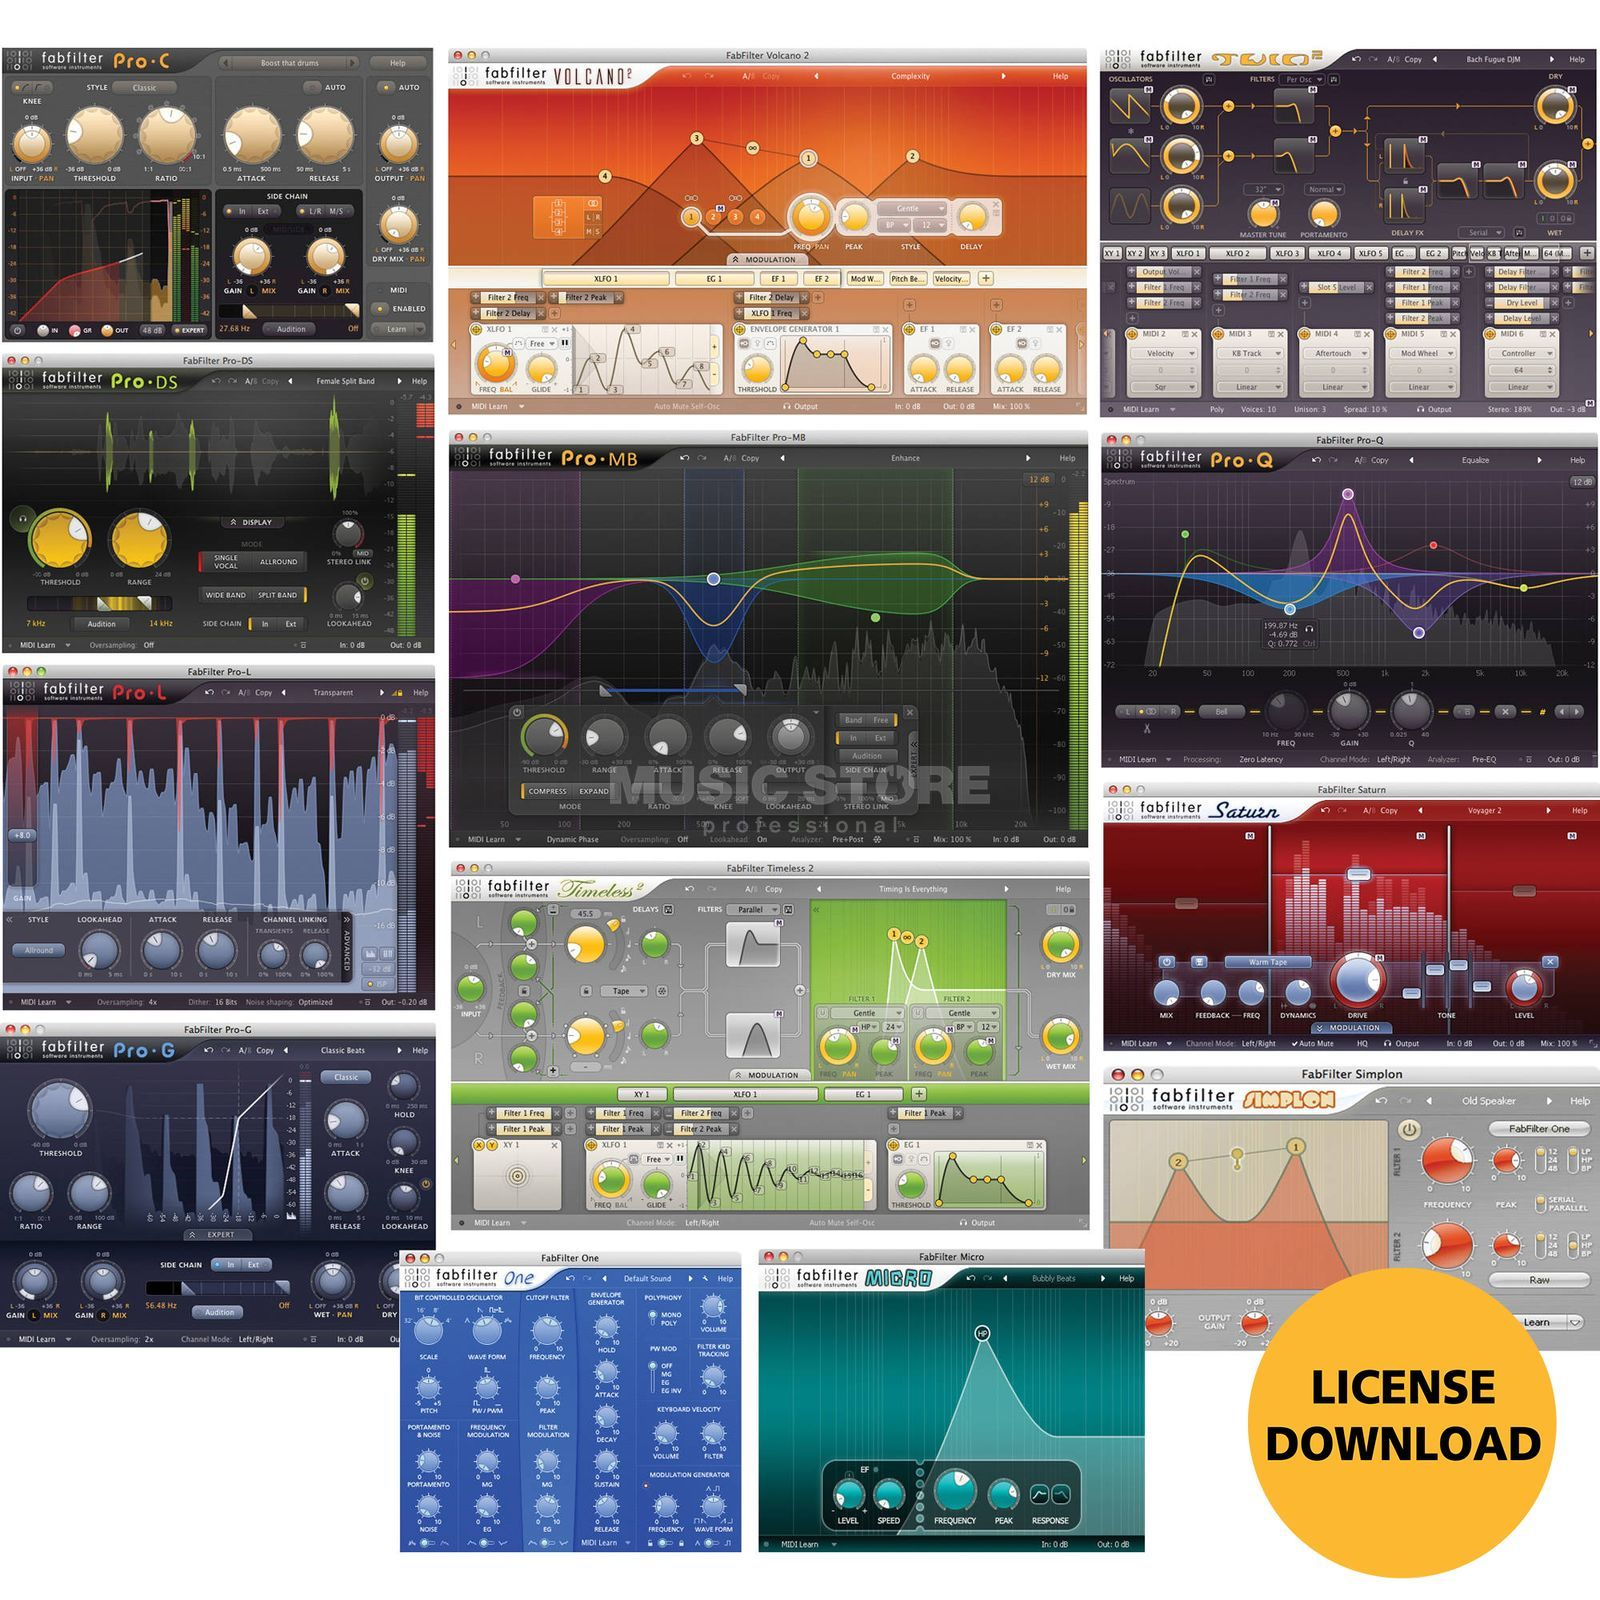 Fabfilter Total Bundle License Code Product Image